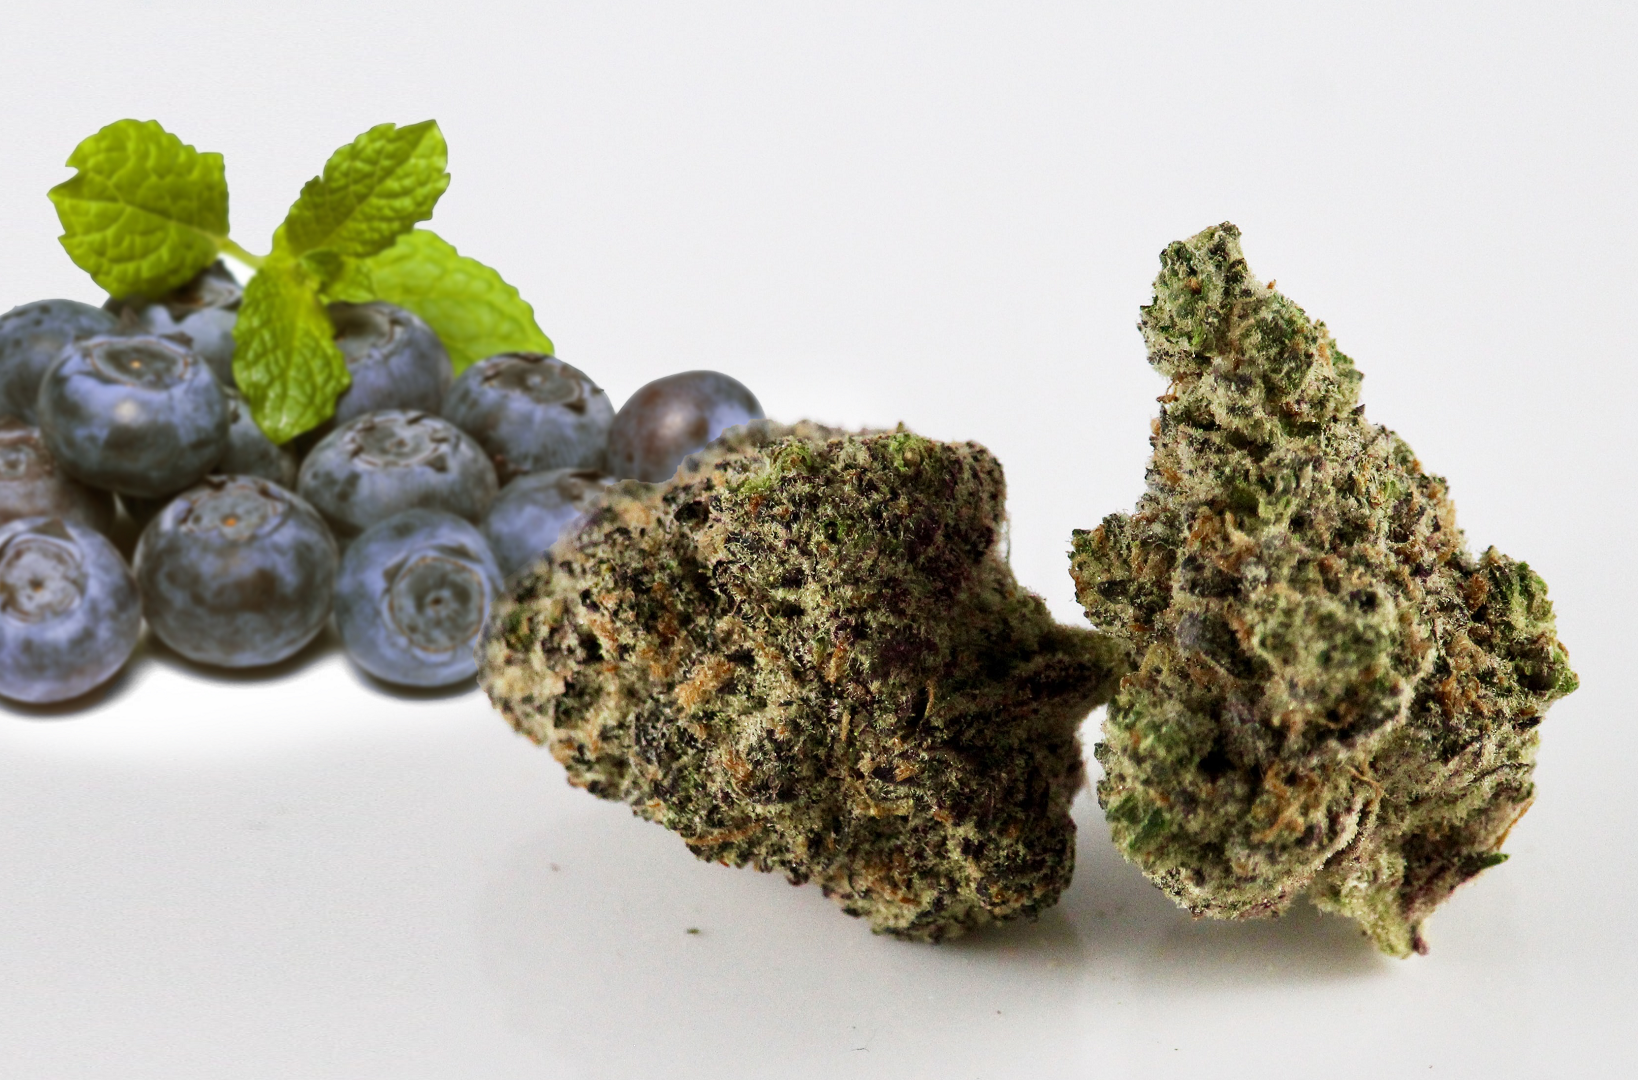 Haze Berry cannabis strain in front of blueberries